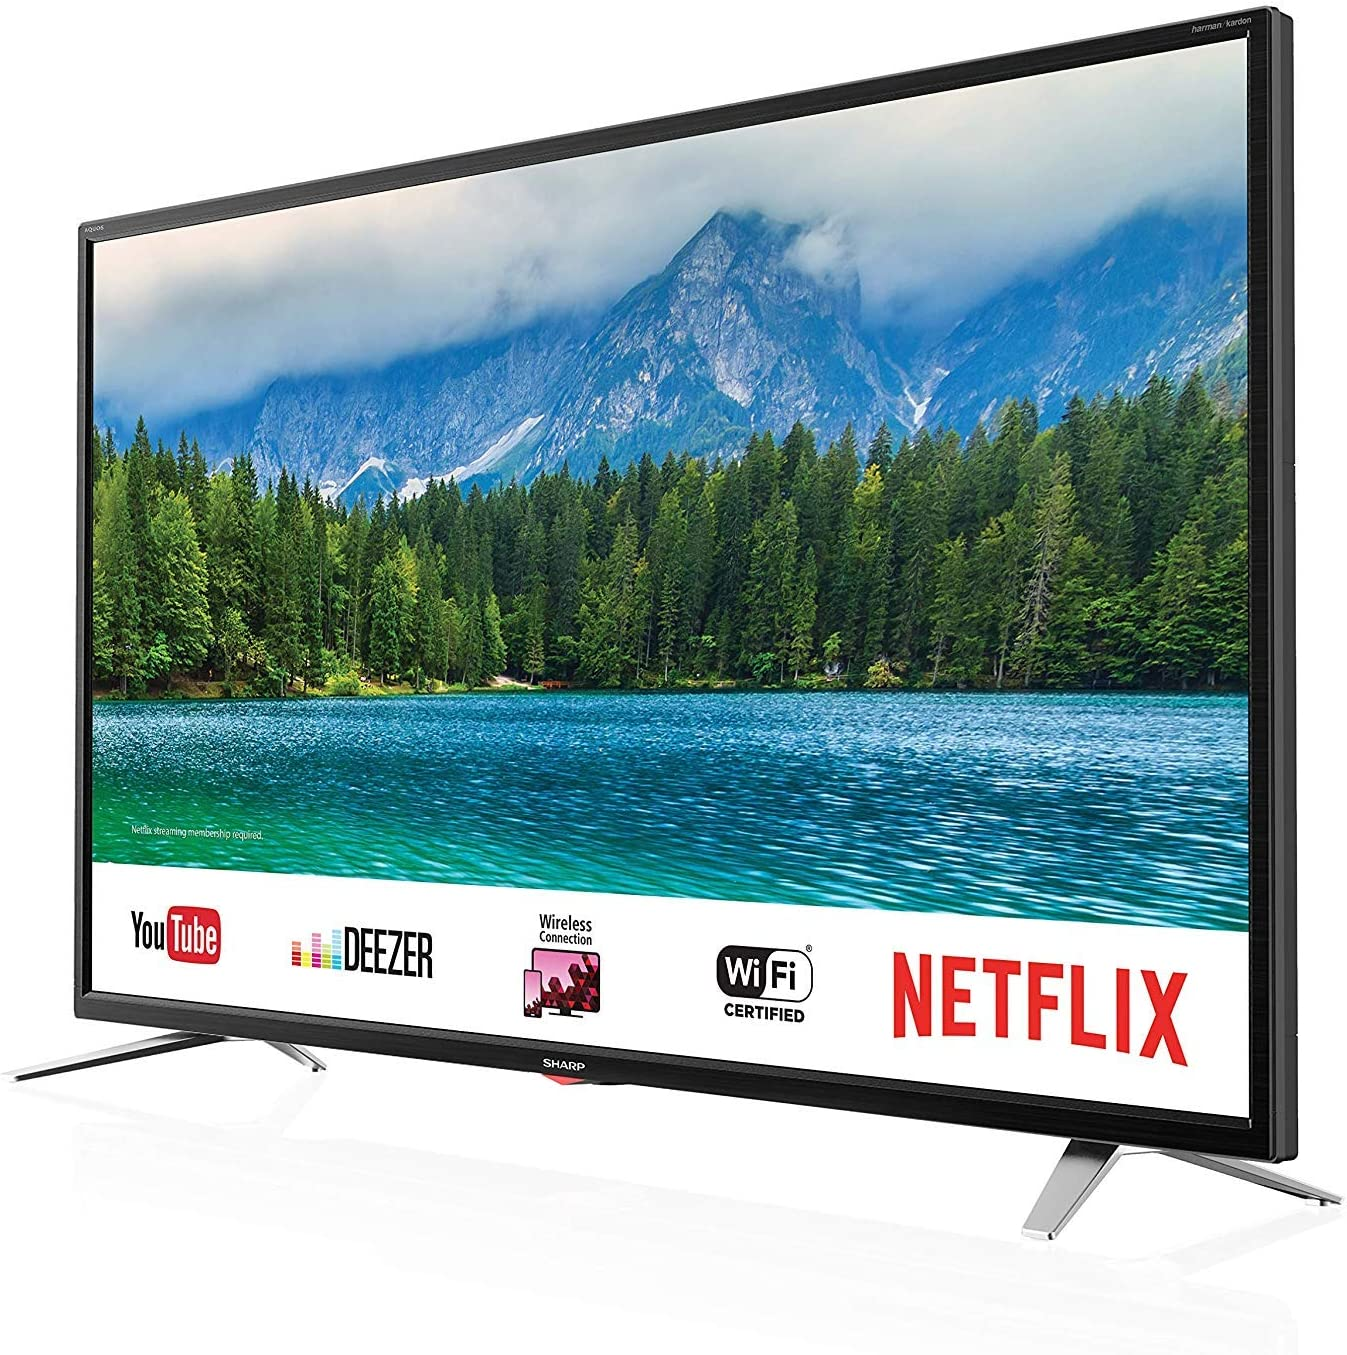 Sharp LC 40 FI5342 E - 102 cm (40 Zoll) TV (Full HD, Smart TV, WLAN, Triple Tuner (DVB T2), USB, Harman/kardon Sound): Amazon.es: Electrónica